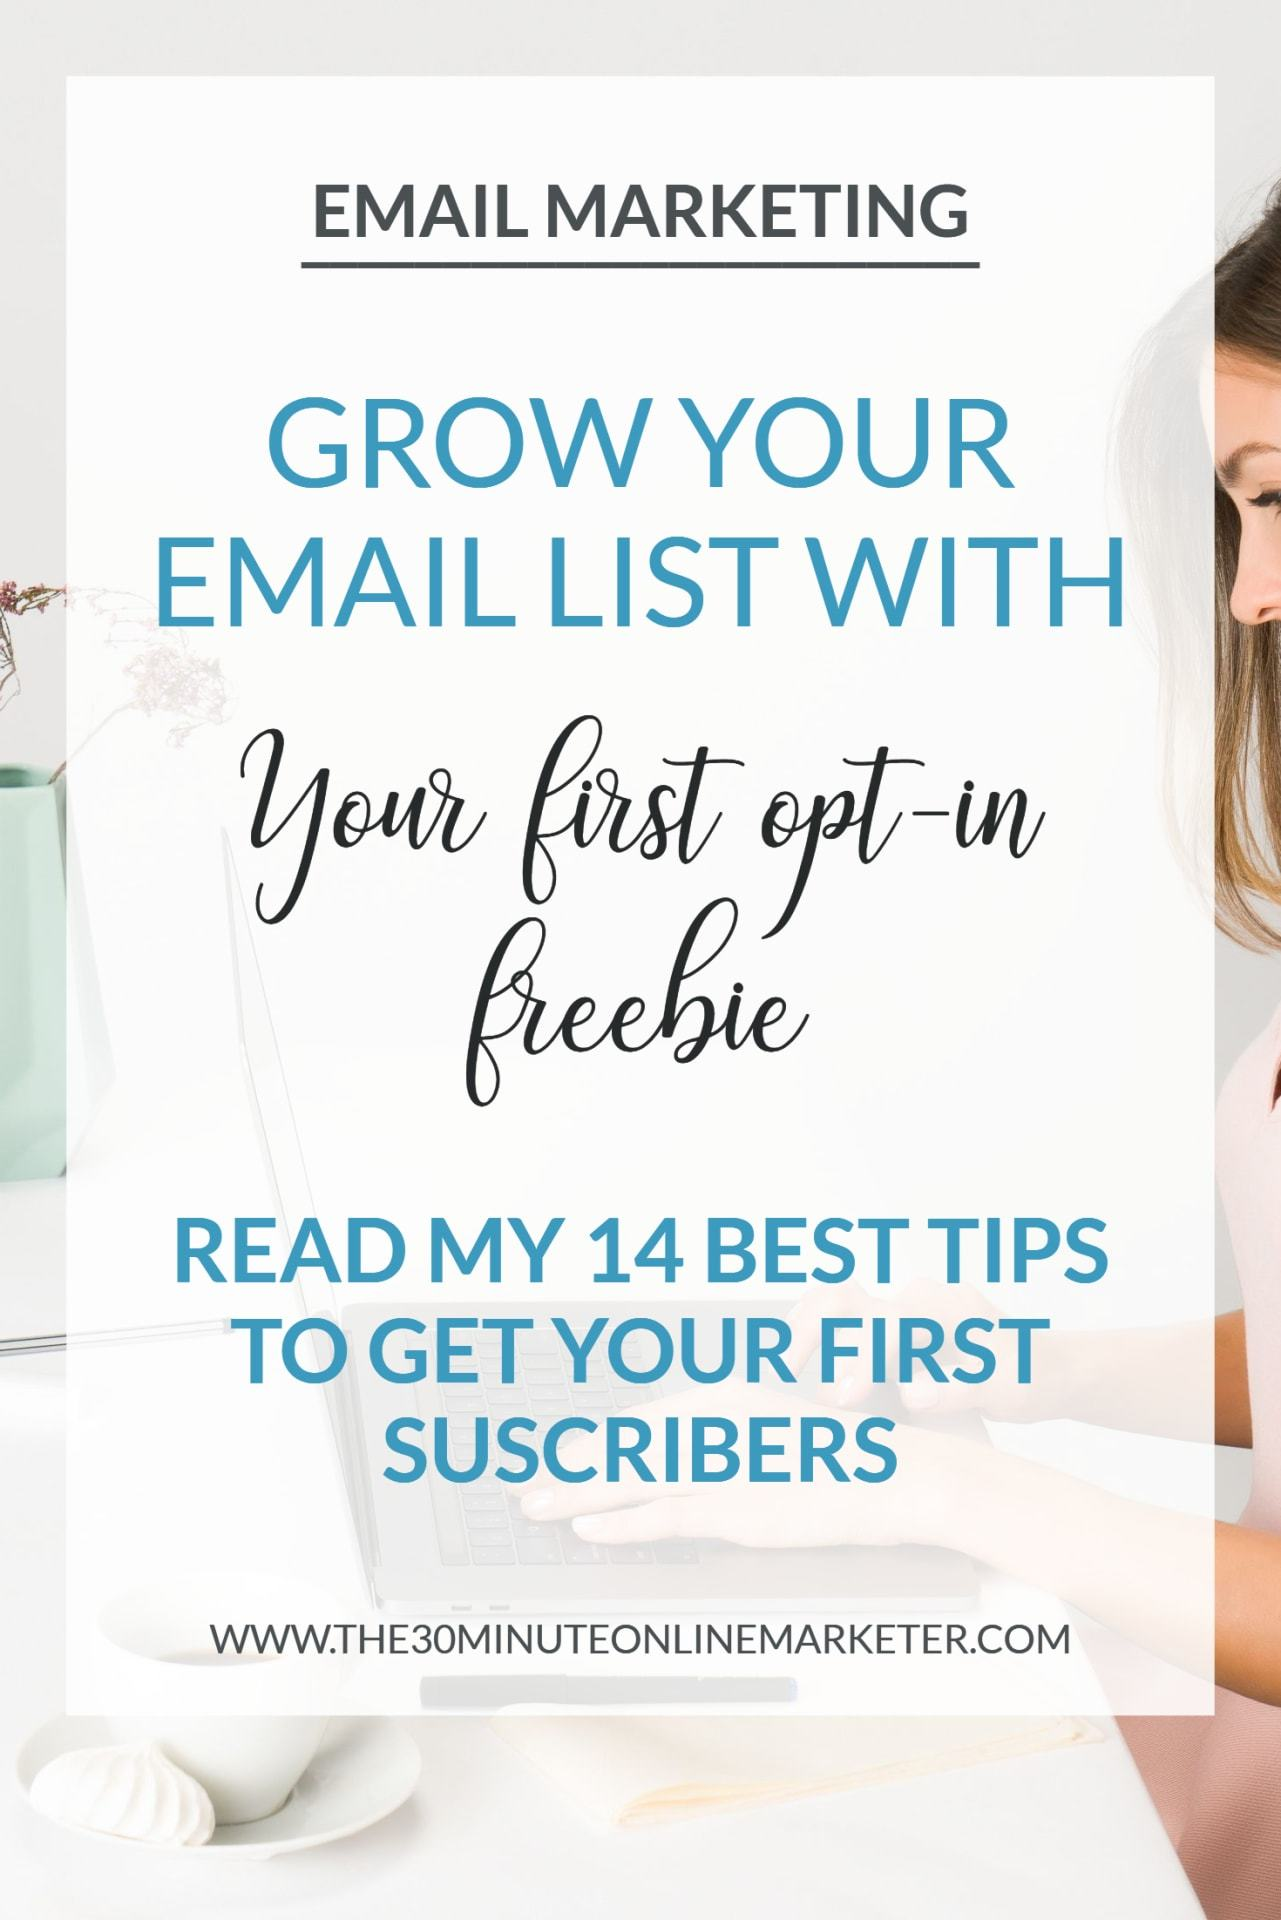 Grow your email list with your first opt-in freebie